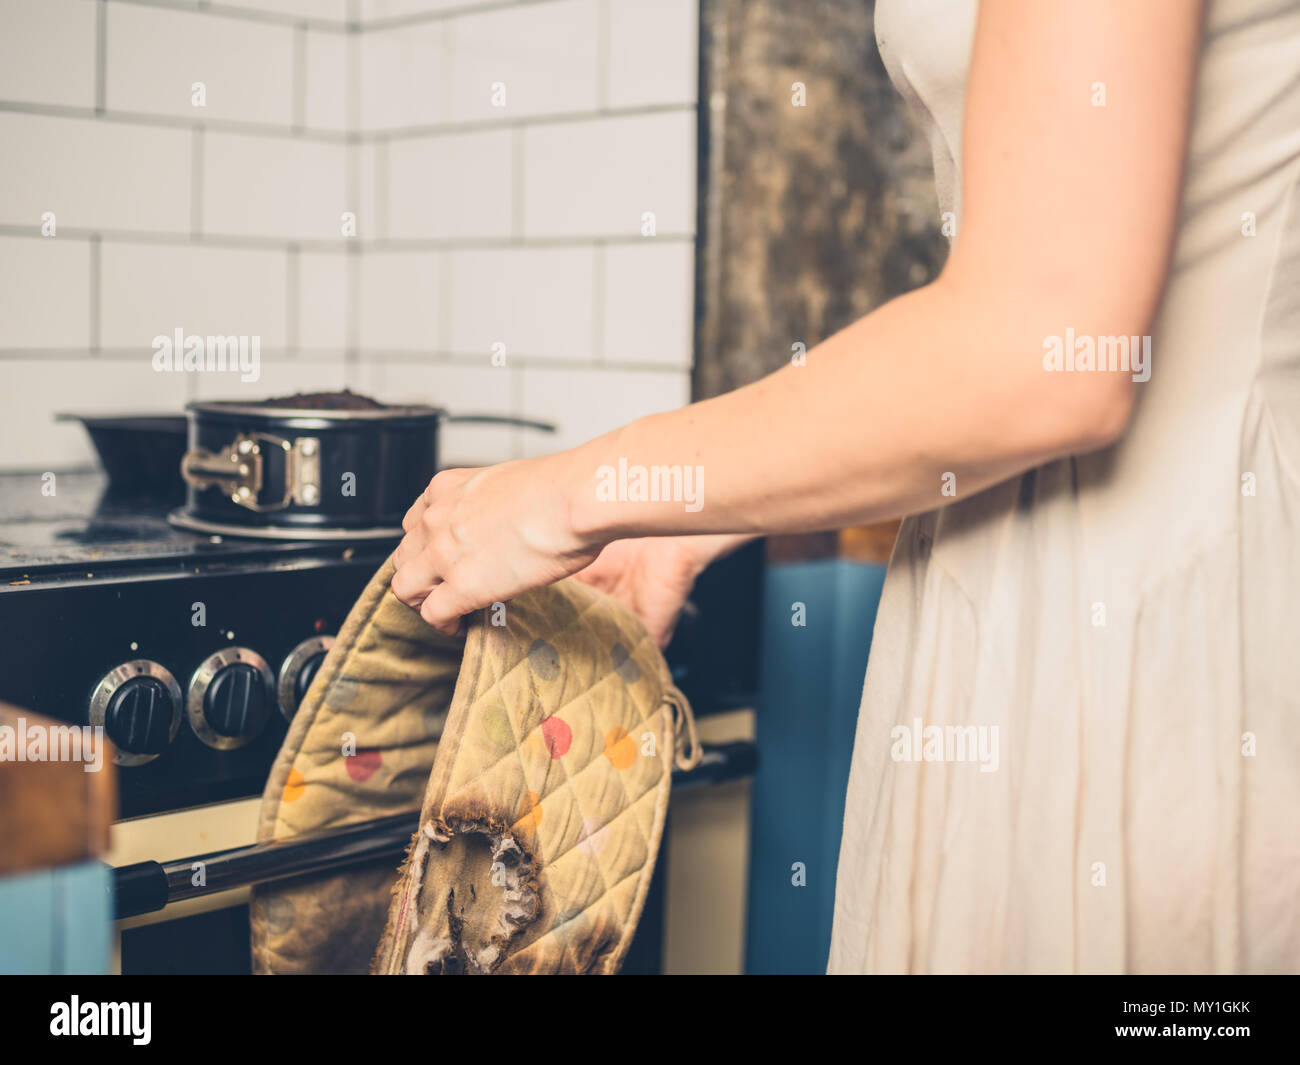 A young woman is standing in the kitchen with a burnt cake and burnt oven gloves - Stock Image